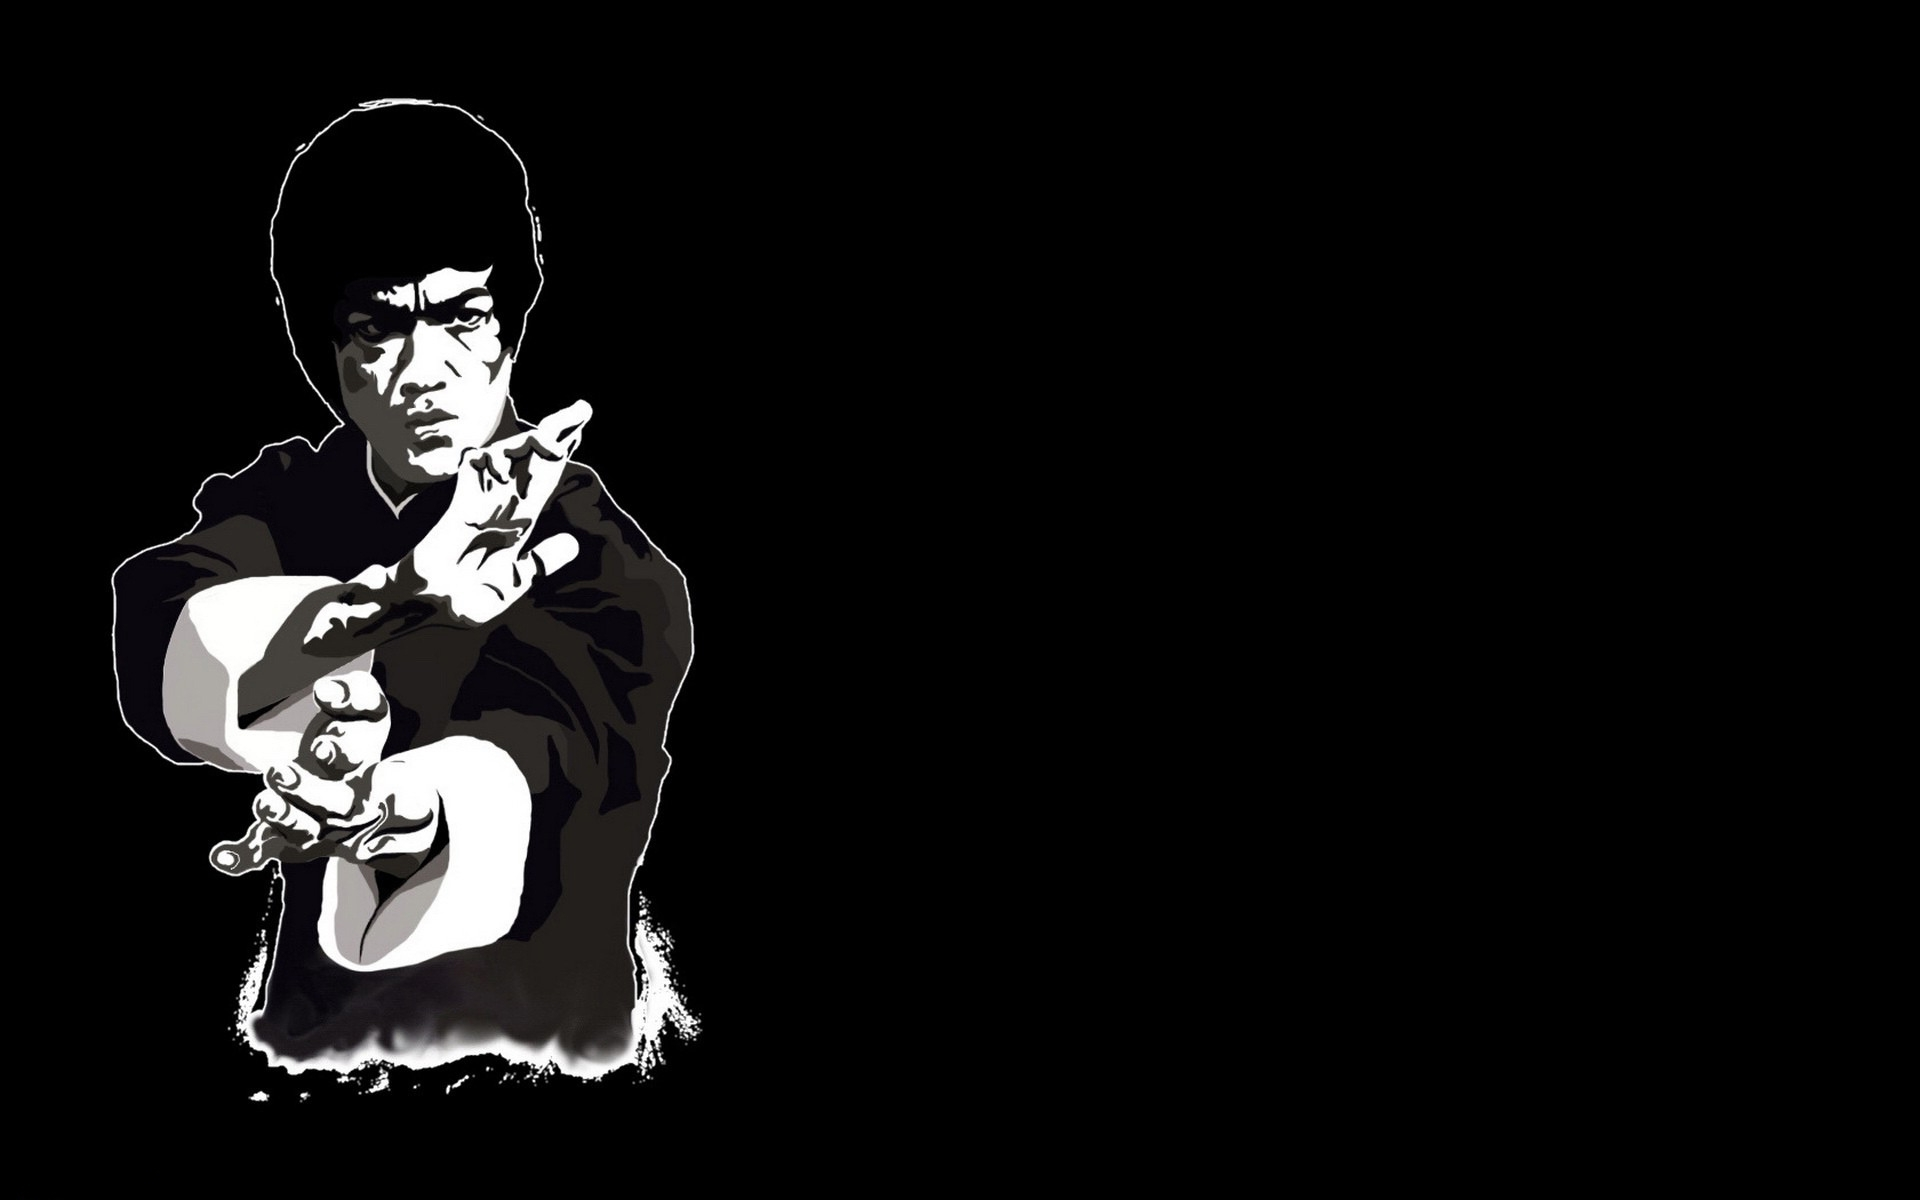 Inspirational Quote Wallpaper Mac Bruce Lee Wallpapers Hd Pixelstalk Net